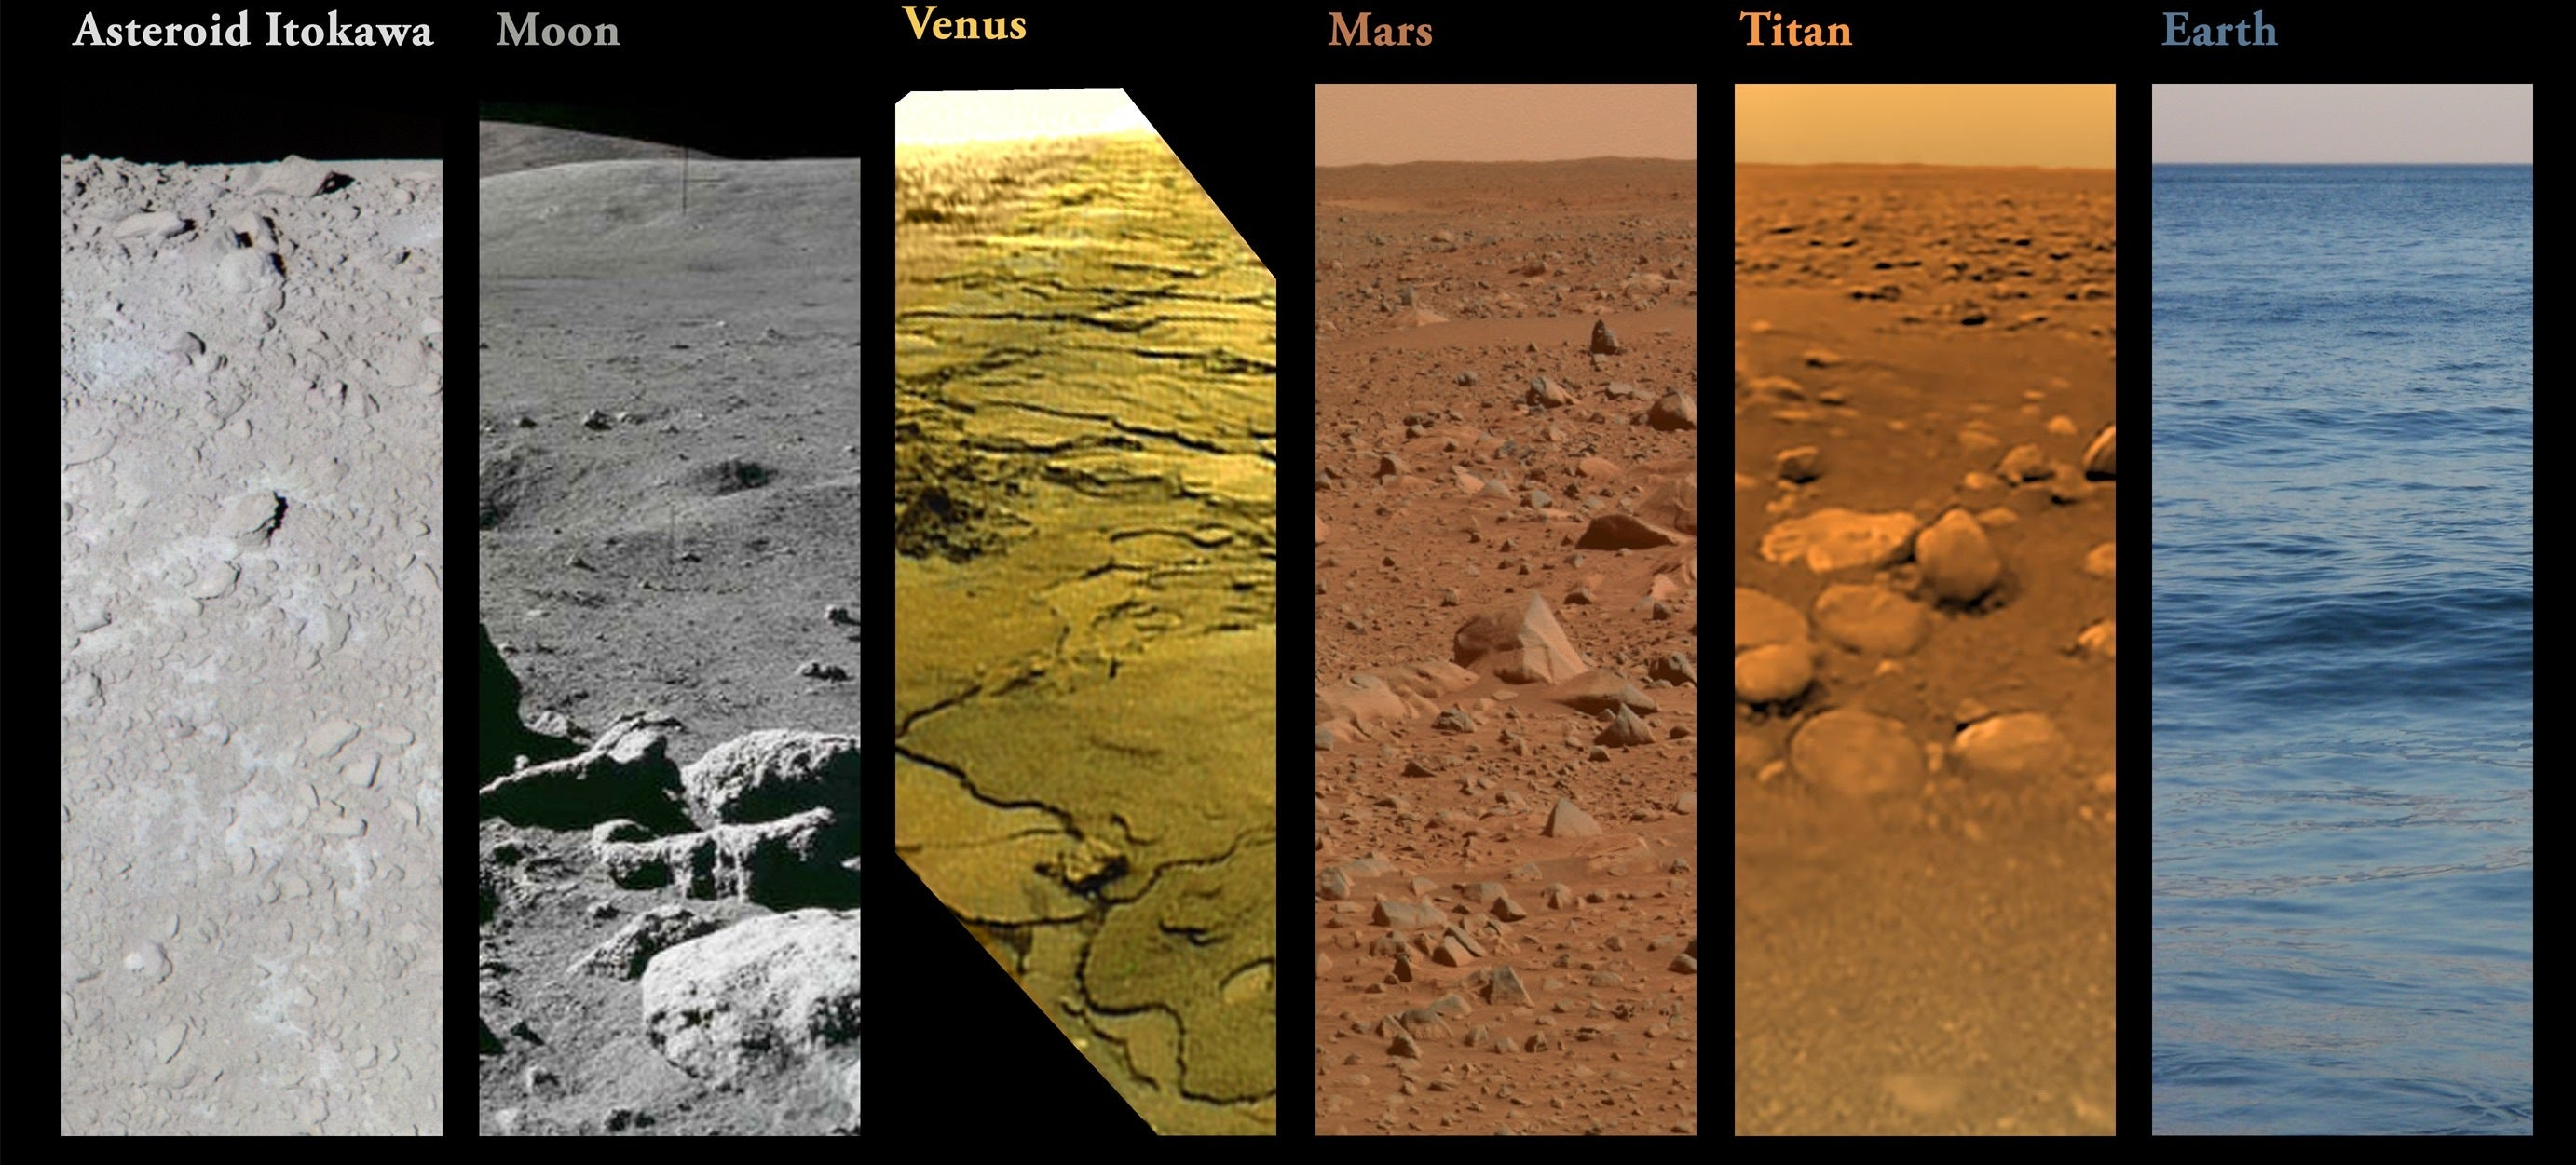 How the Alien Surfaces of Our Solar System Look, Side-by-Side